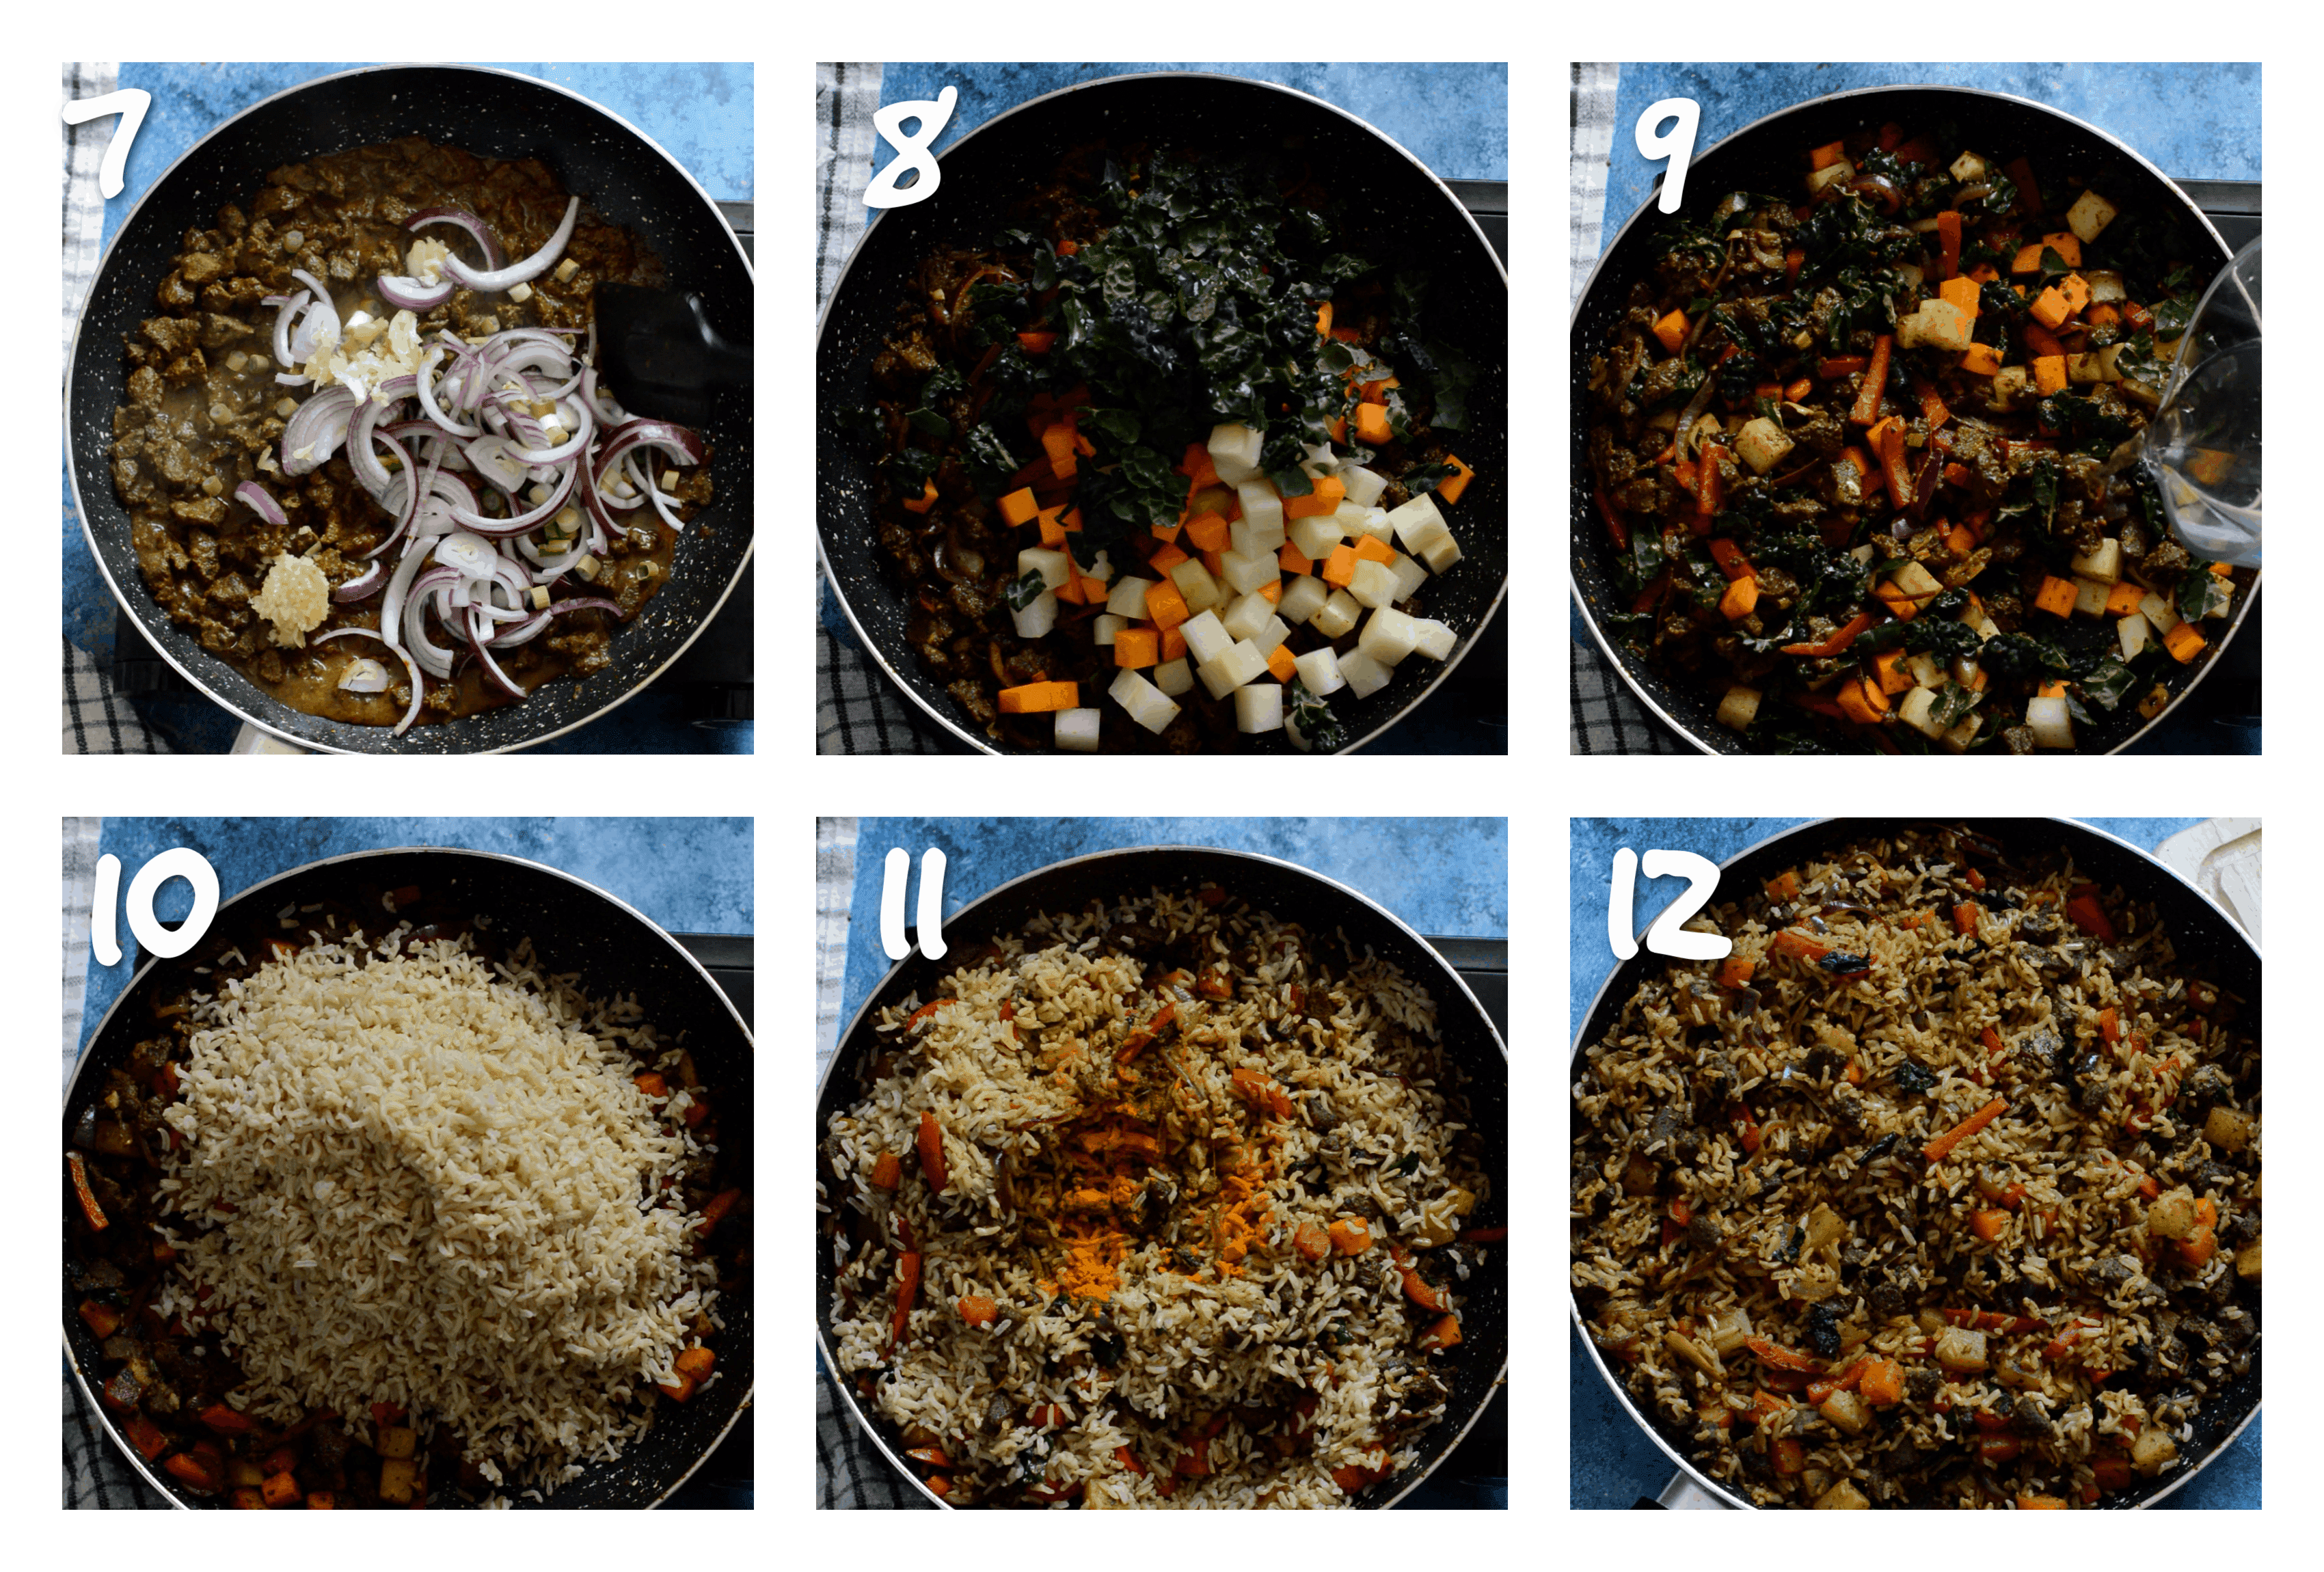 steps7-12 adding the vegetables and rice